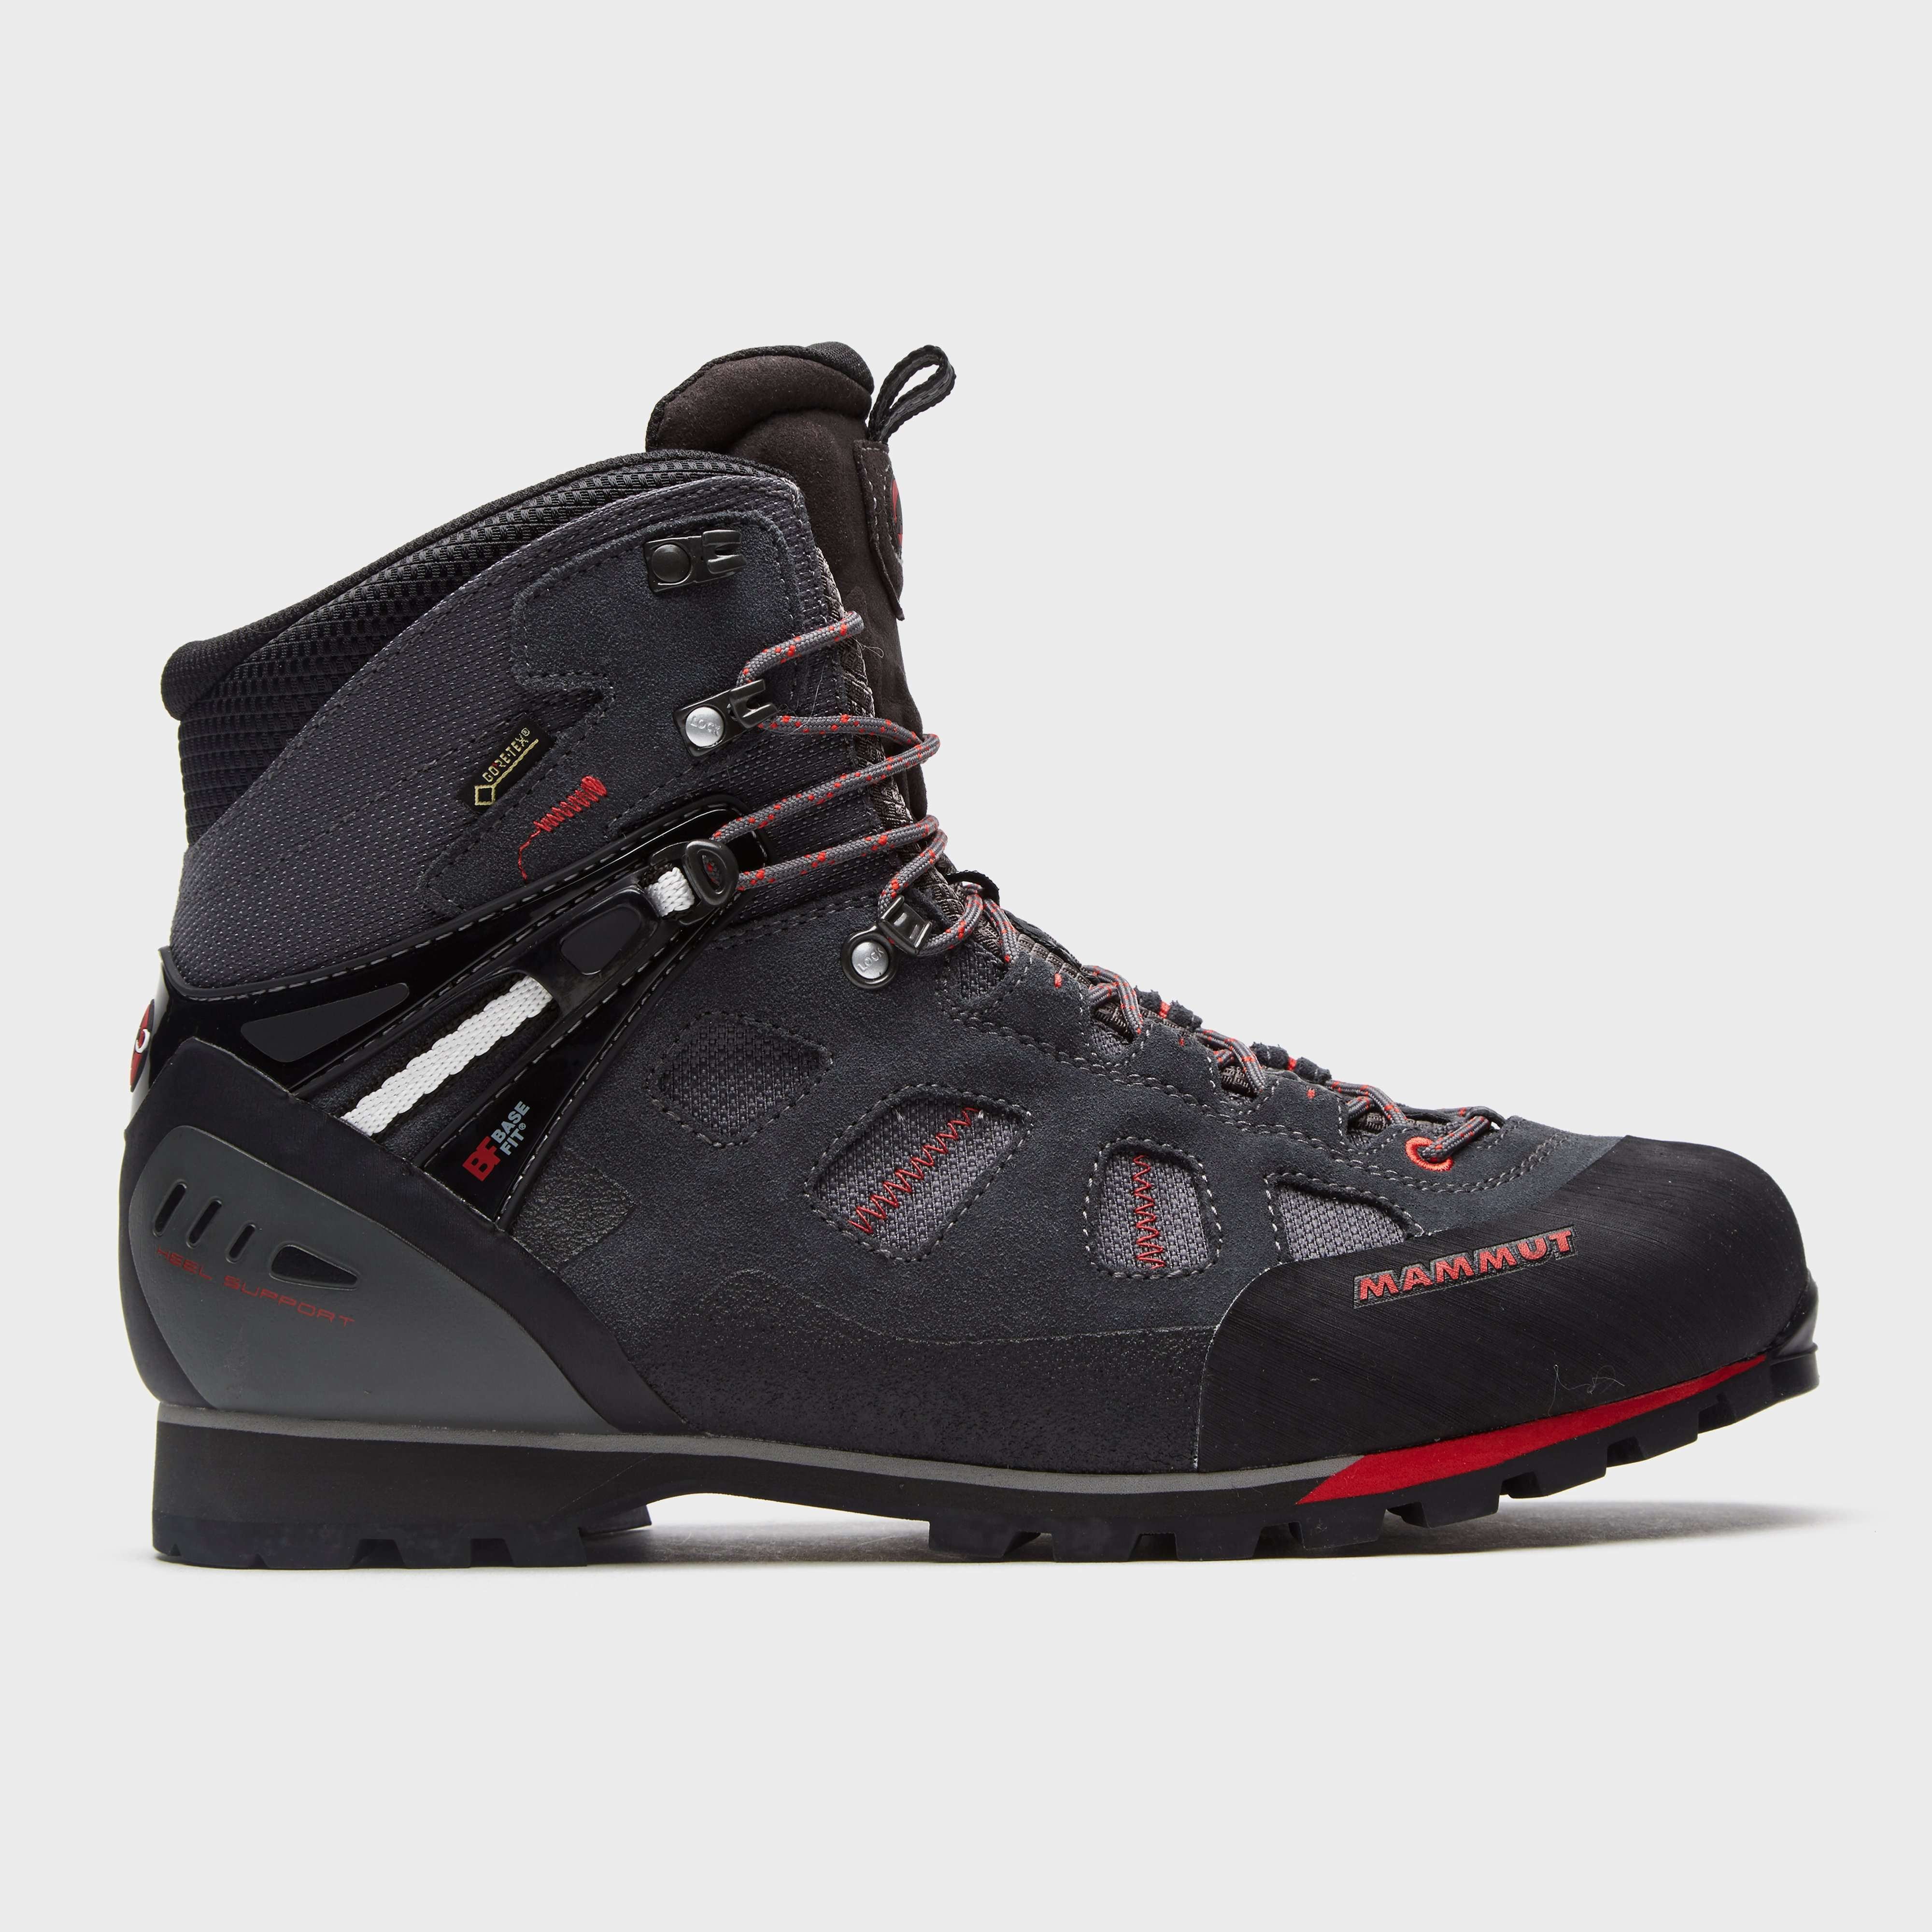 MAMMUT Men's Ayako High GORE-TEX® Boots